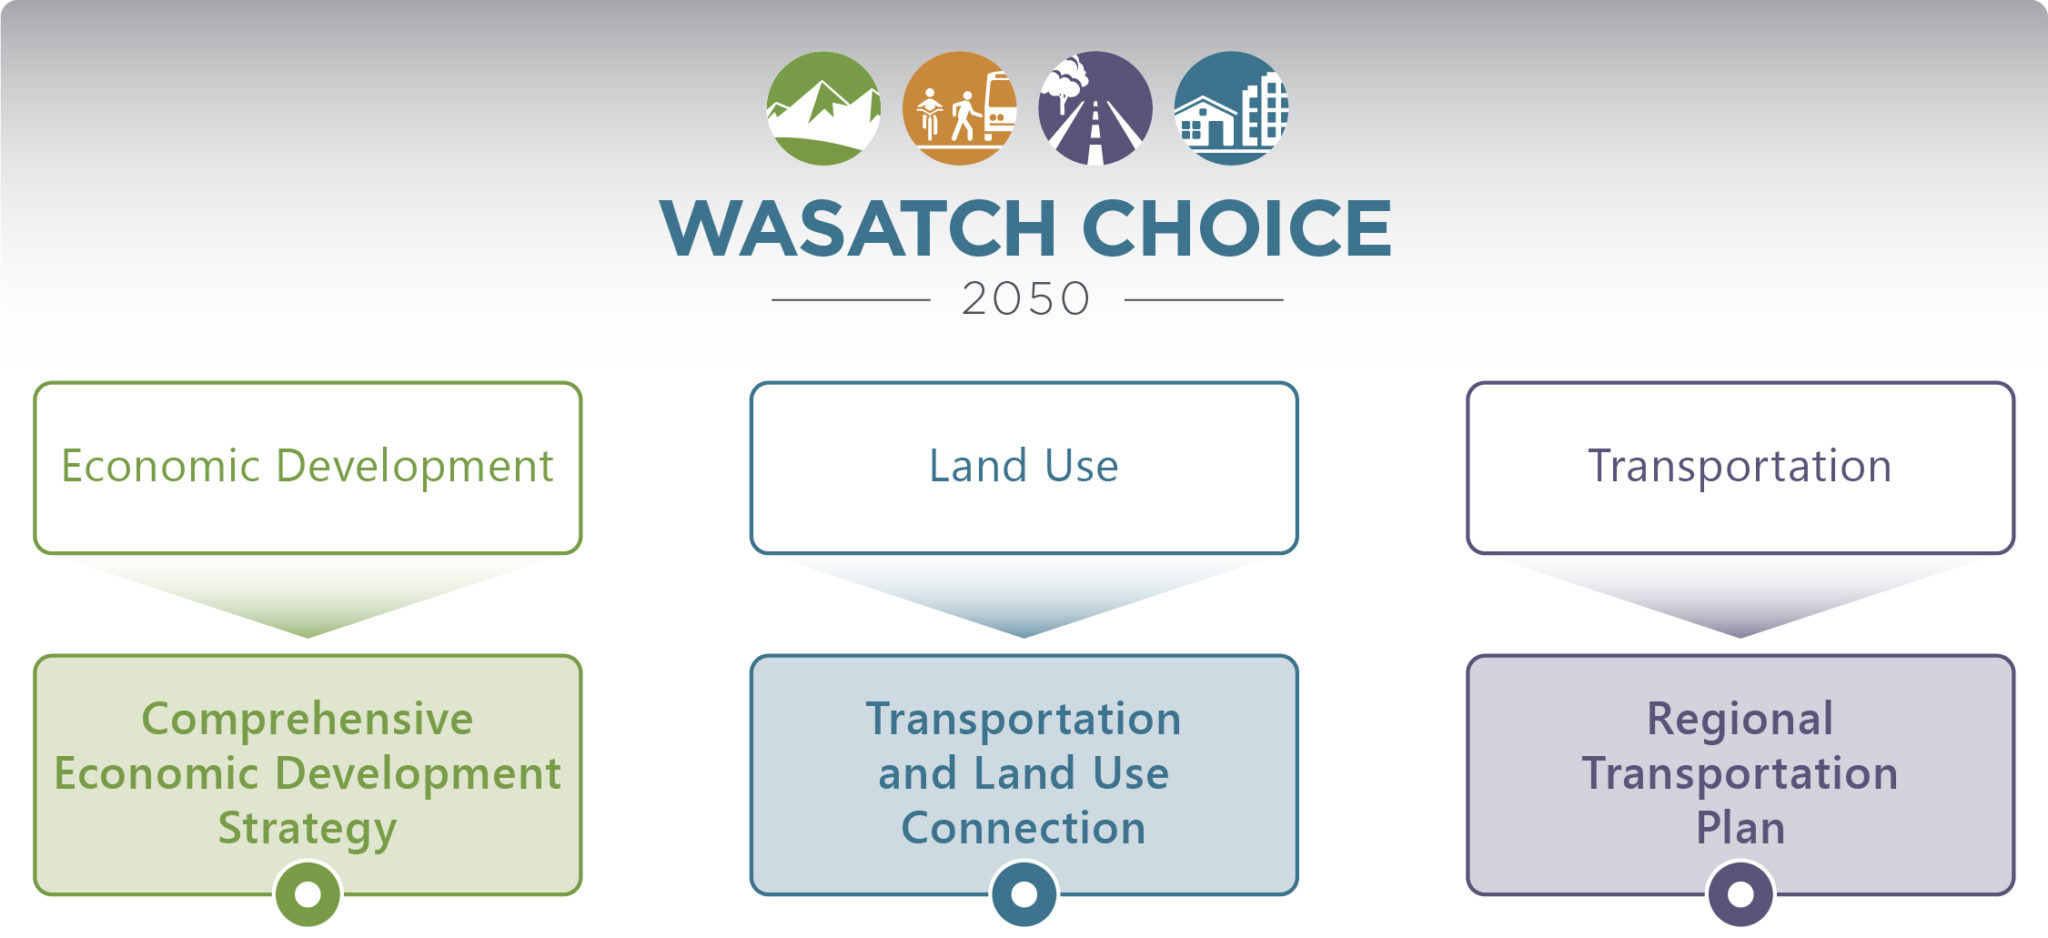 Wasatch Choice 2050 overall process graphic.